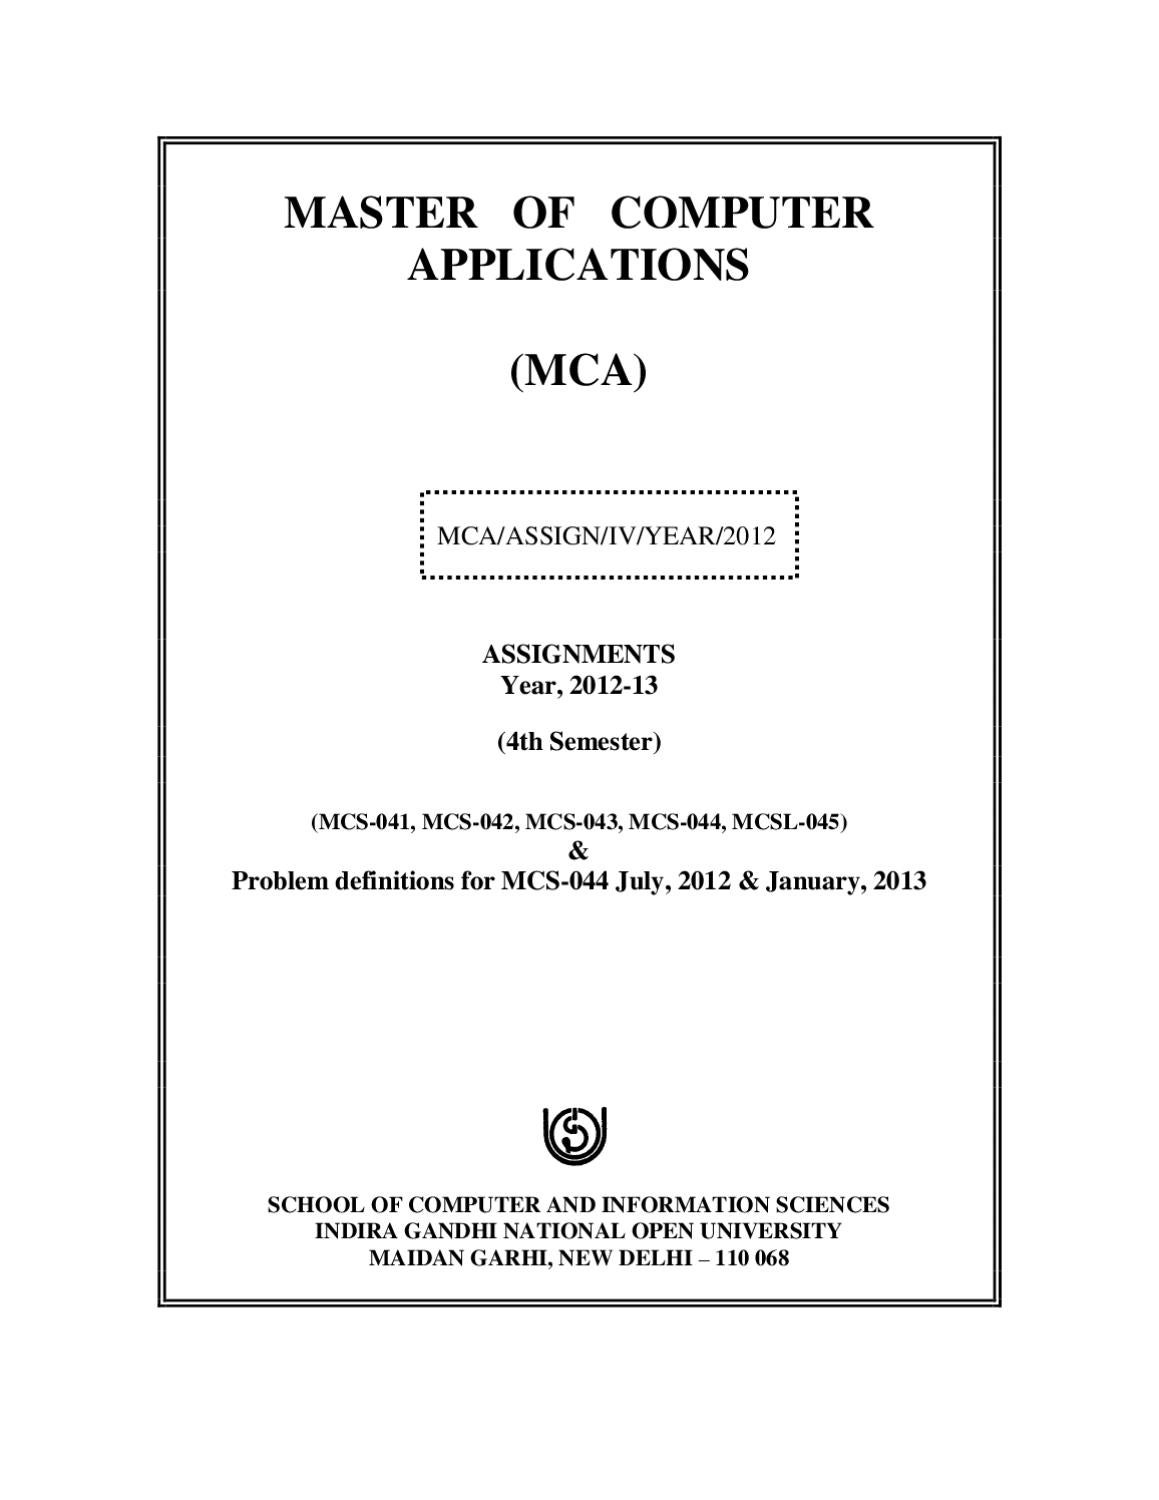 Mca assignment 2012 13 iv sem by ignou mca issuu for Assignment front page decoration